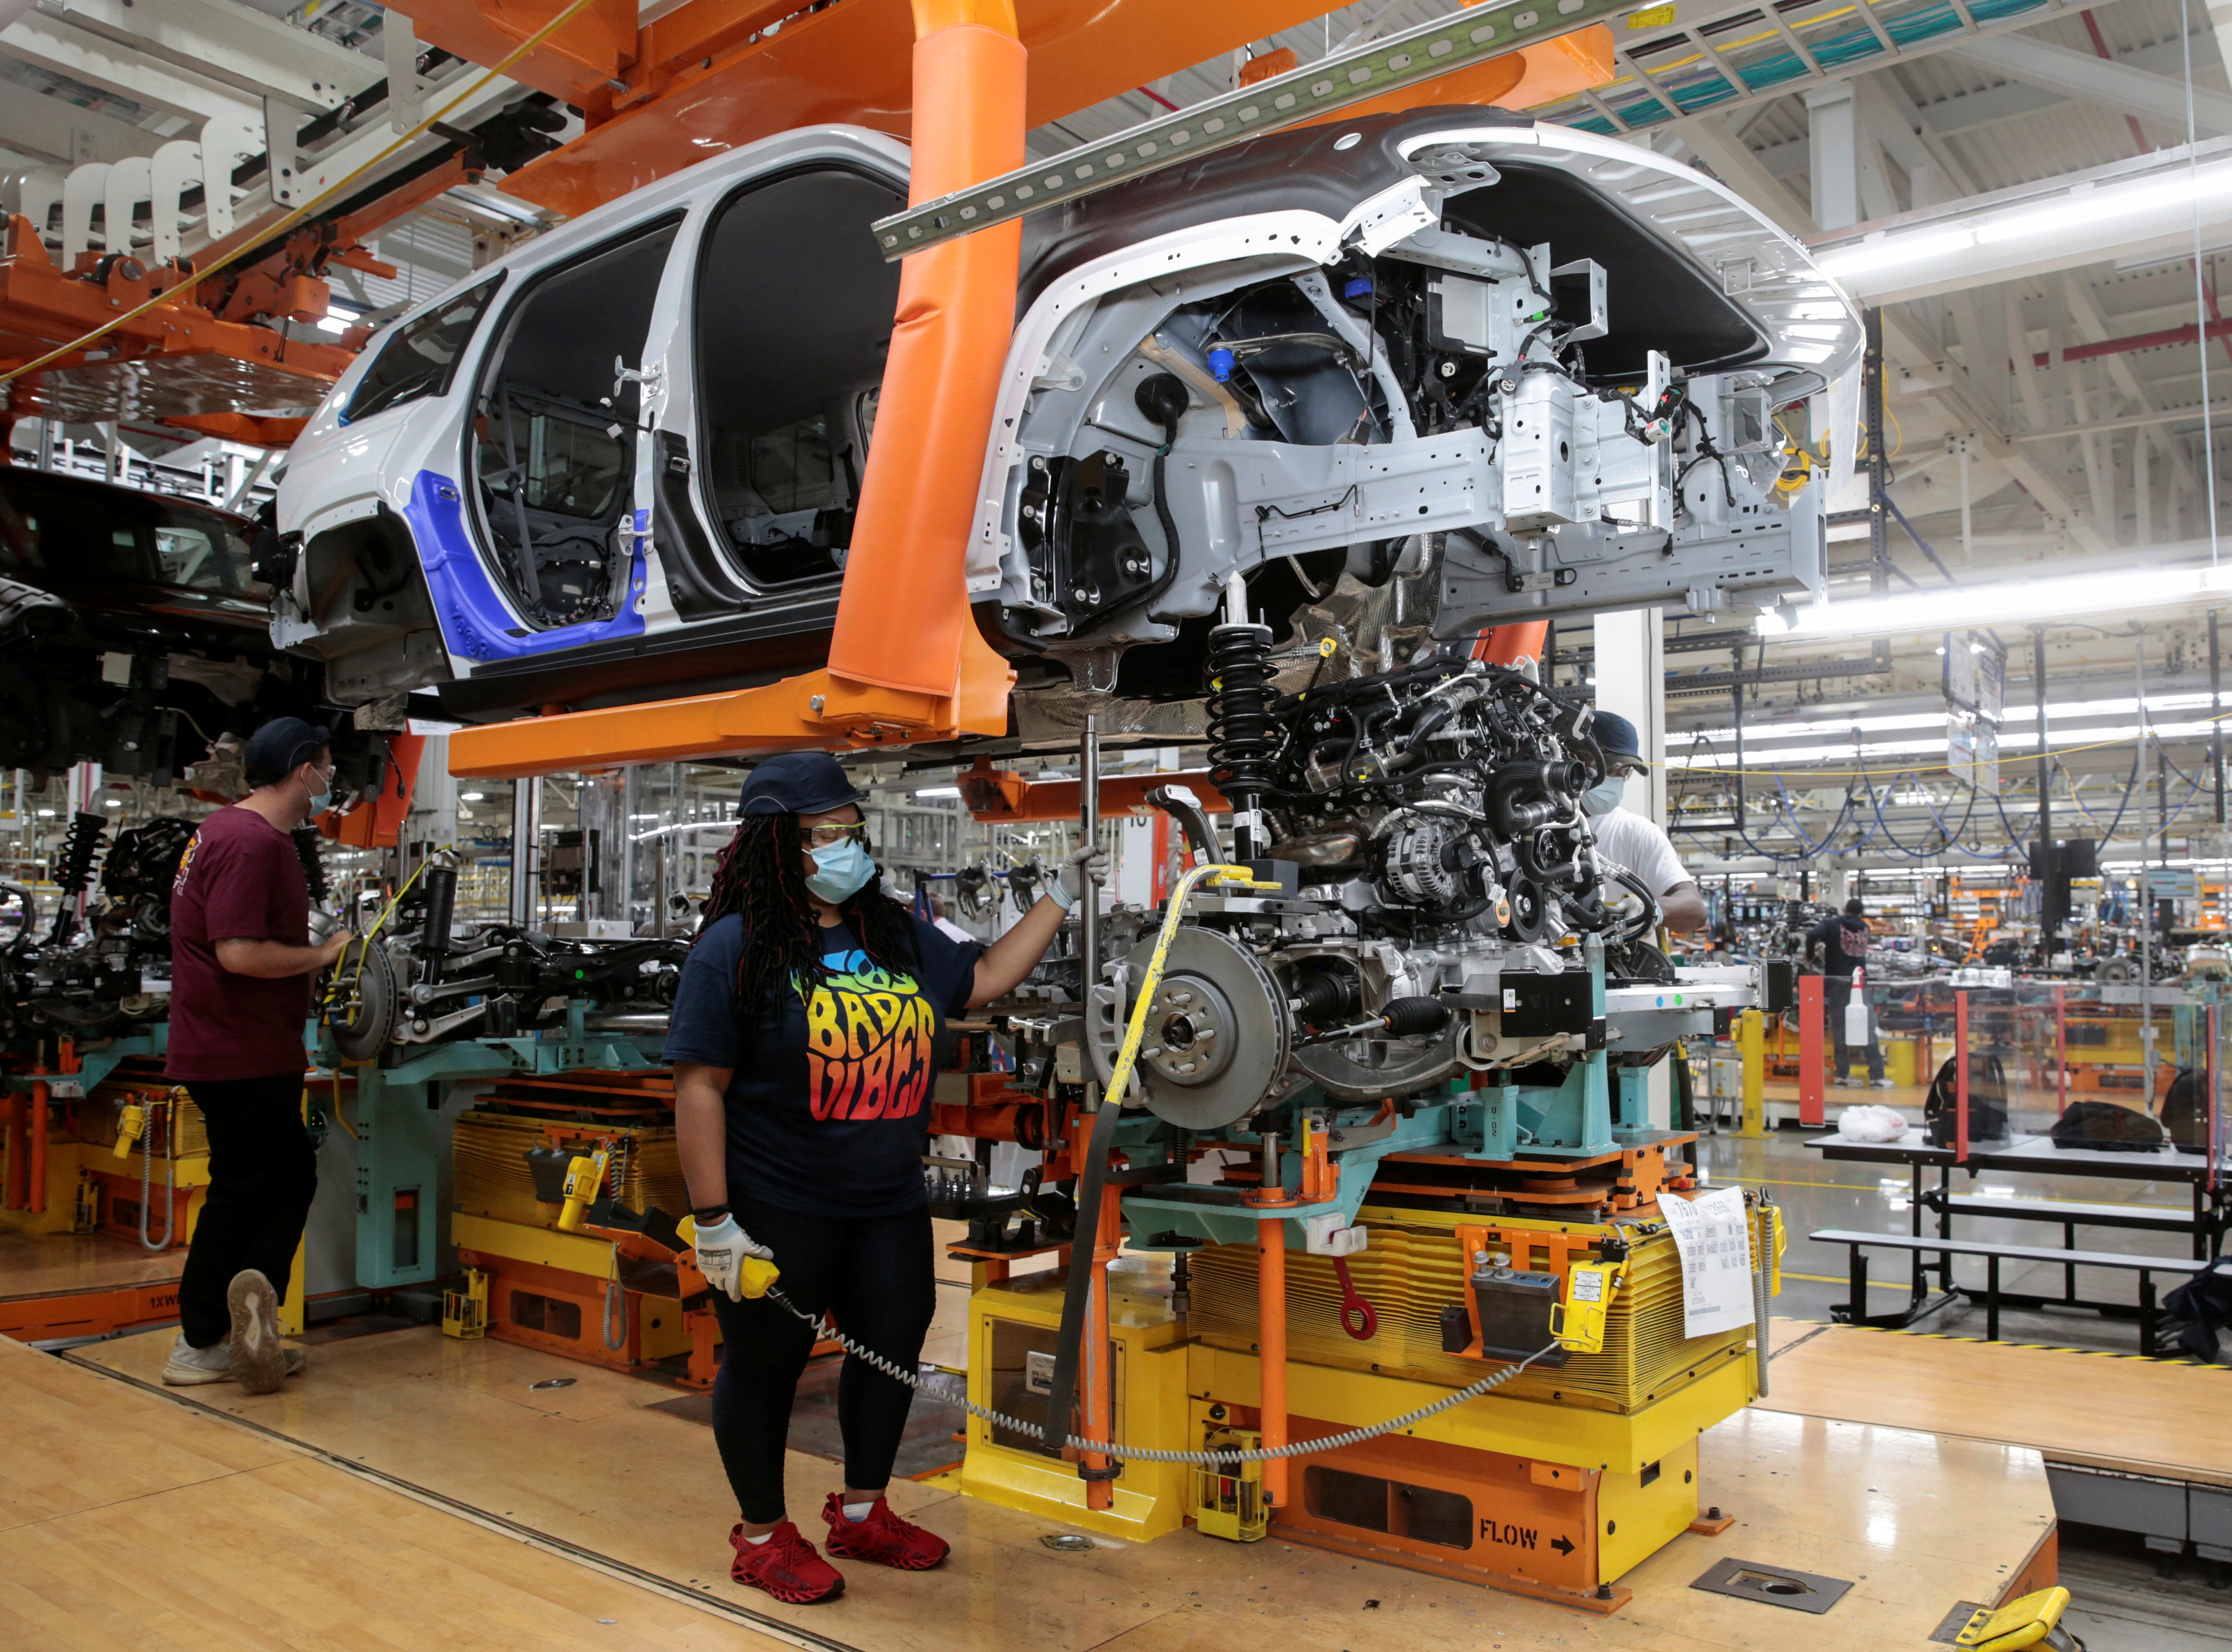 Stellantis assembly workers merge the chassis with the body of a 2021 Jeep Grand Cherokee L frame on the assembly line at the Detroit Assembly Complex - Mack Plant in Detroit, Michigan, U.S., June 10, 2021. Picture taken June 10, 2021. REUTERS/Rebecca Cook